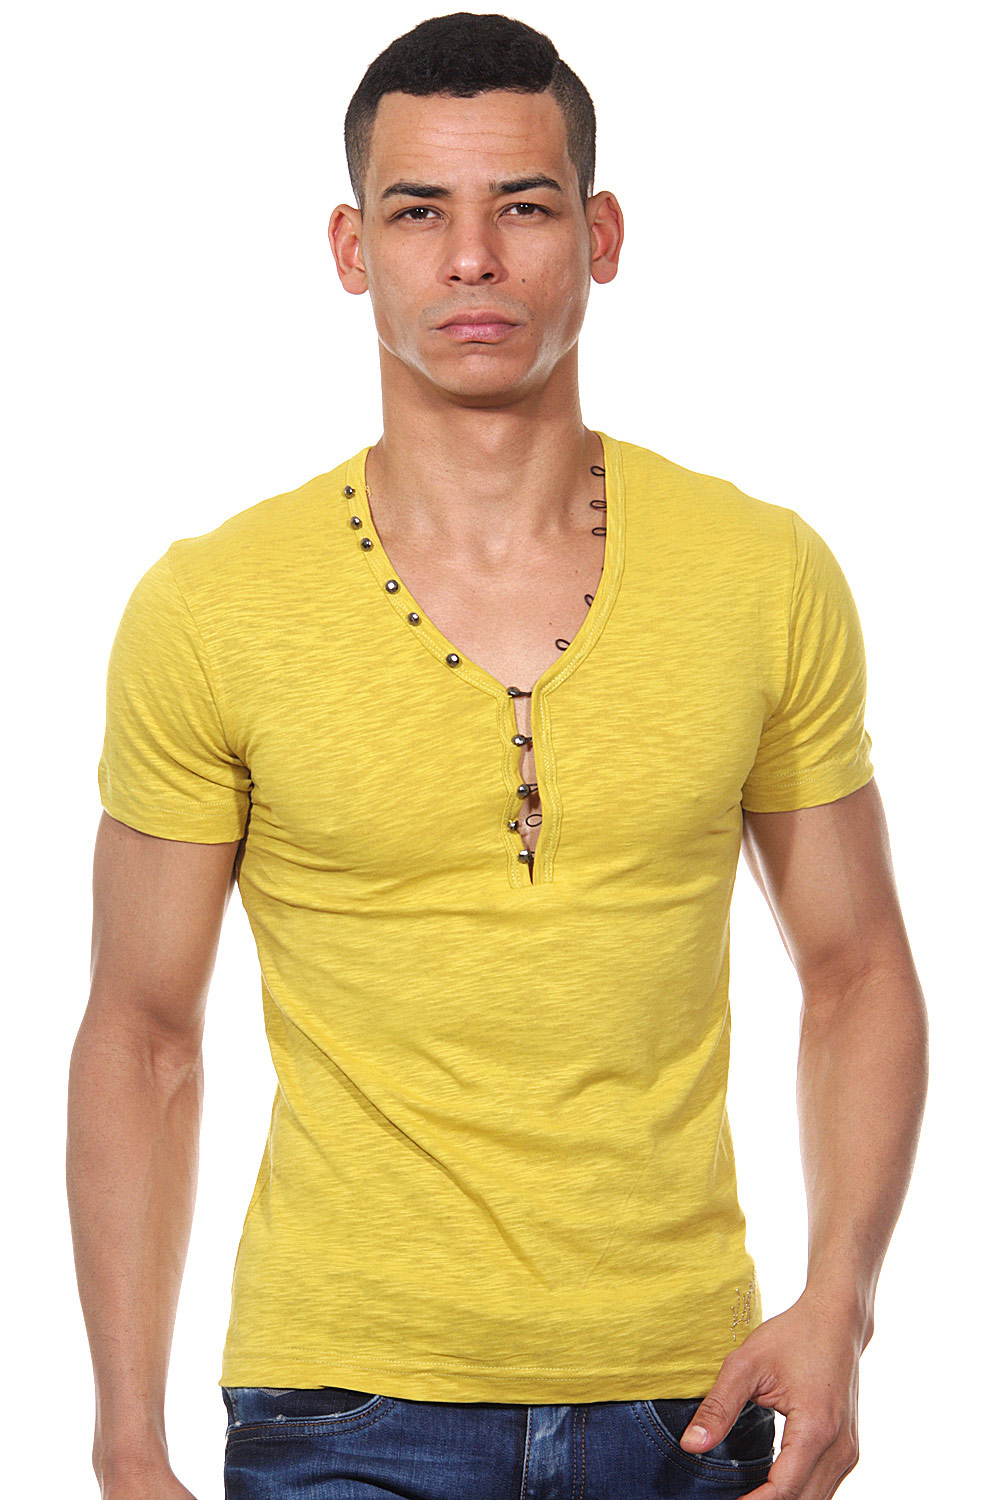 KINGZ henley t-shirt slim fit at oboy.com